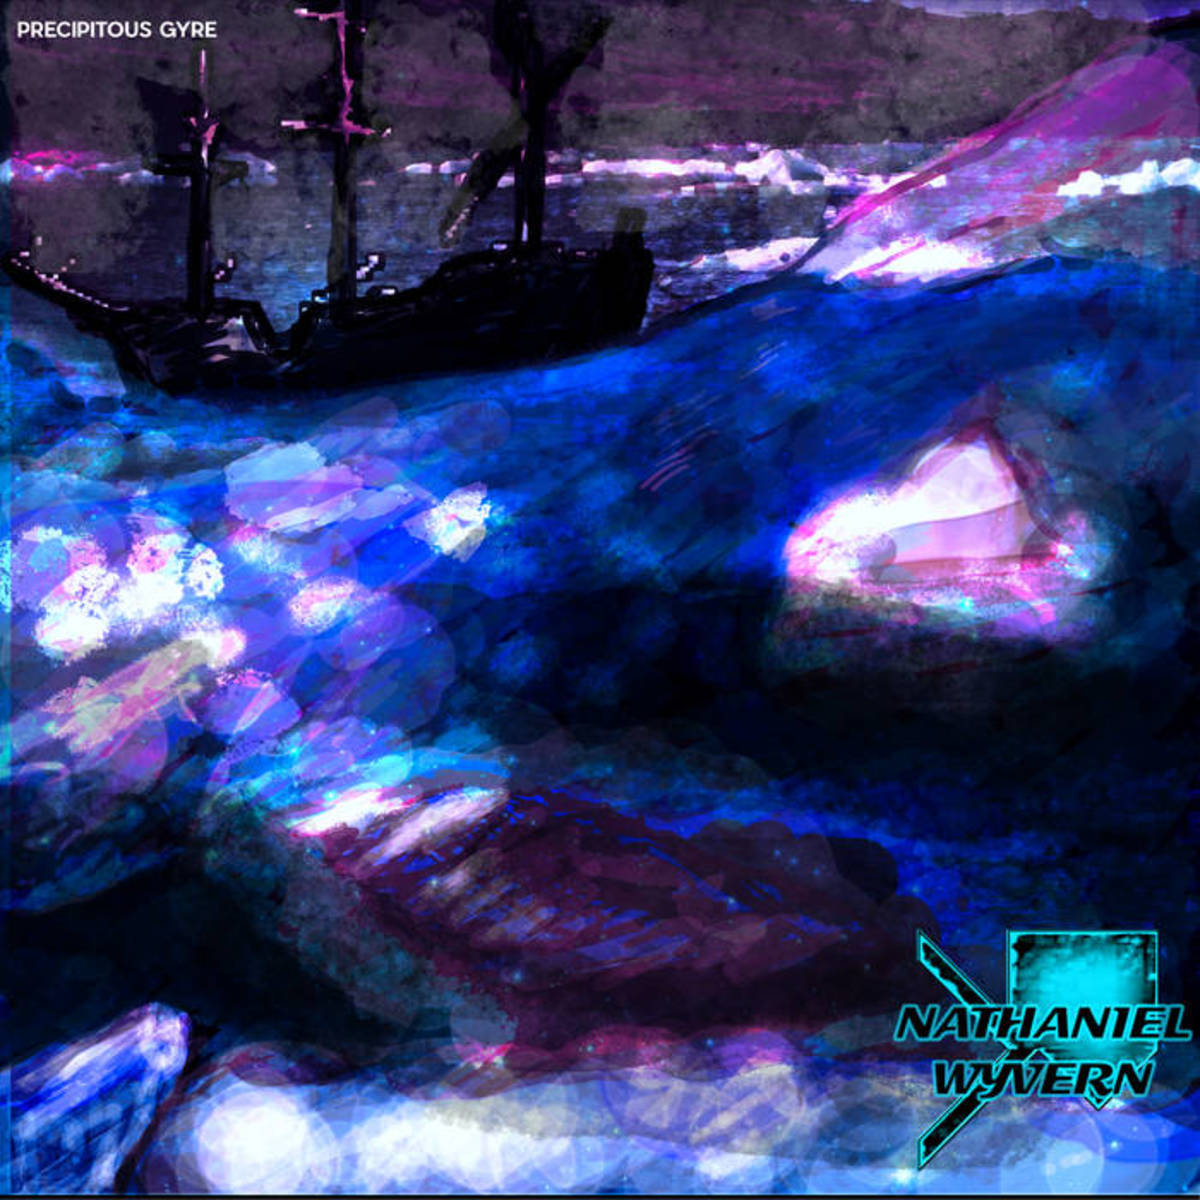 """Synth EP Review—""""Precipitous Gyre"""" by Nathaniel Wyvern"""